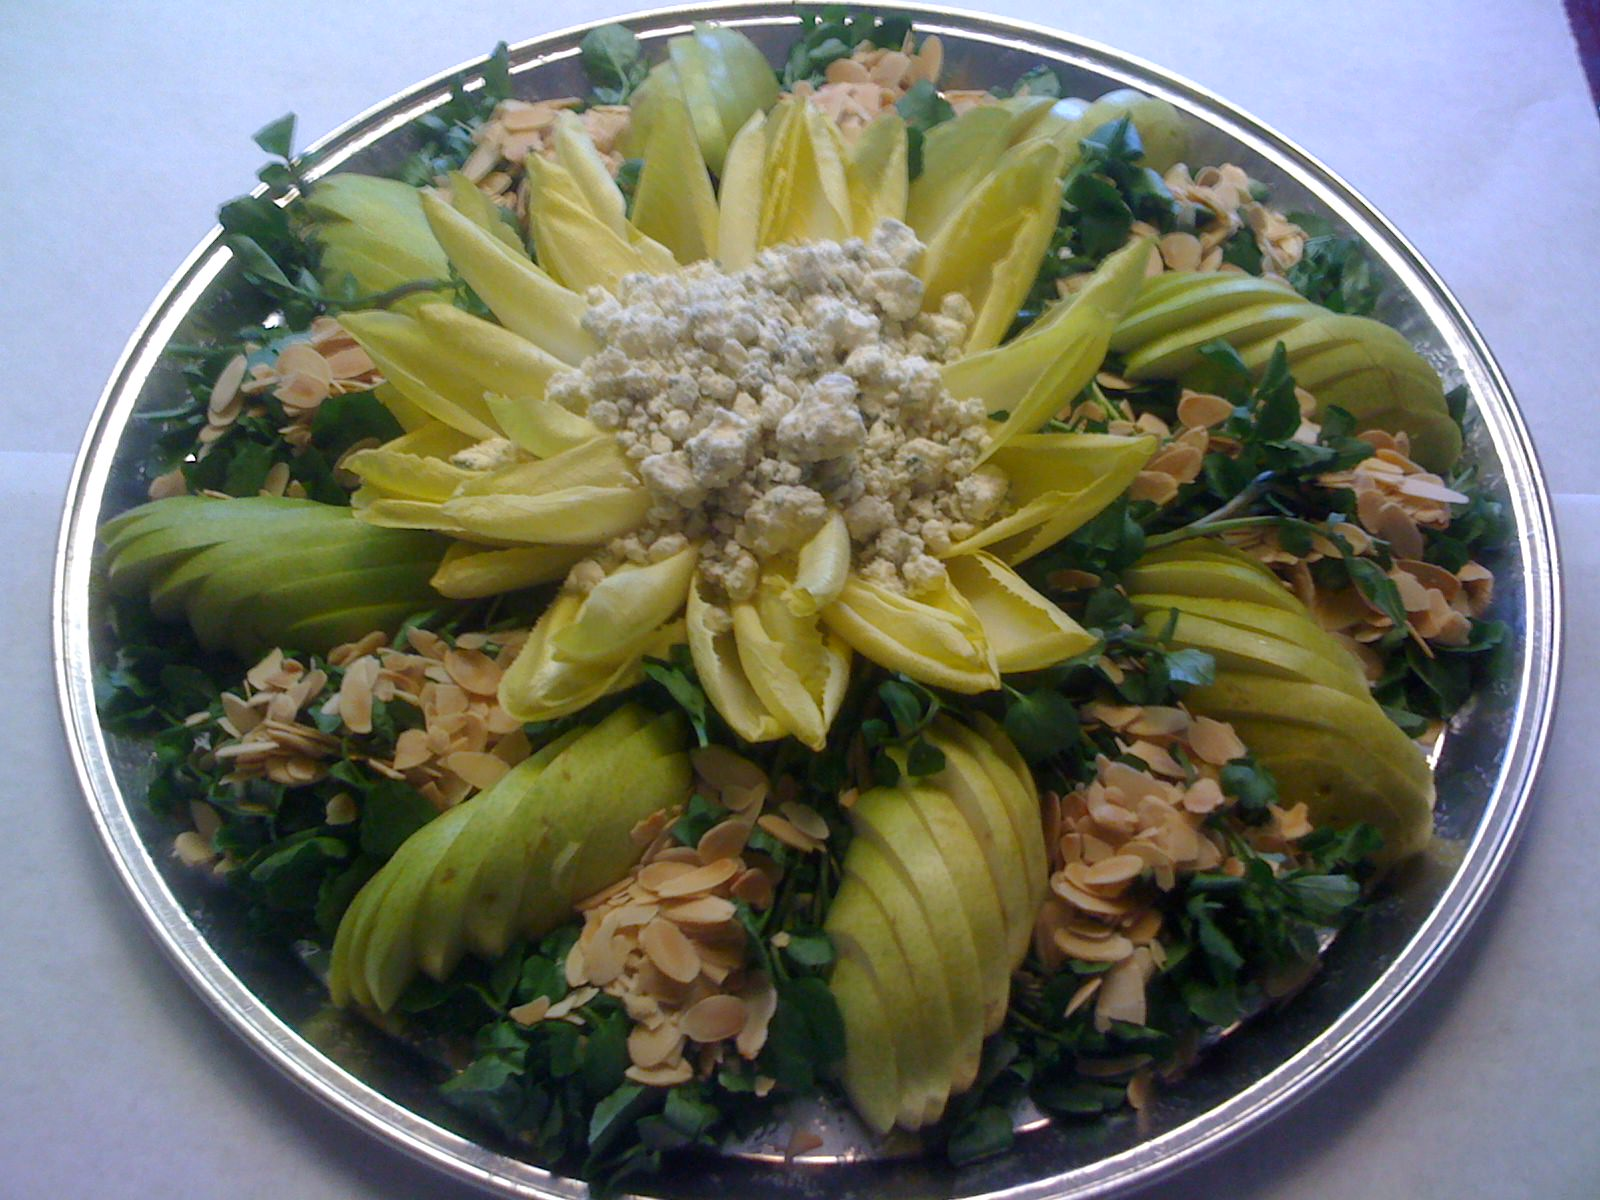 Watercress and Endive with Pears, Gorgonzola and Slivered Almond